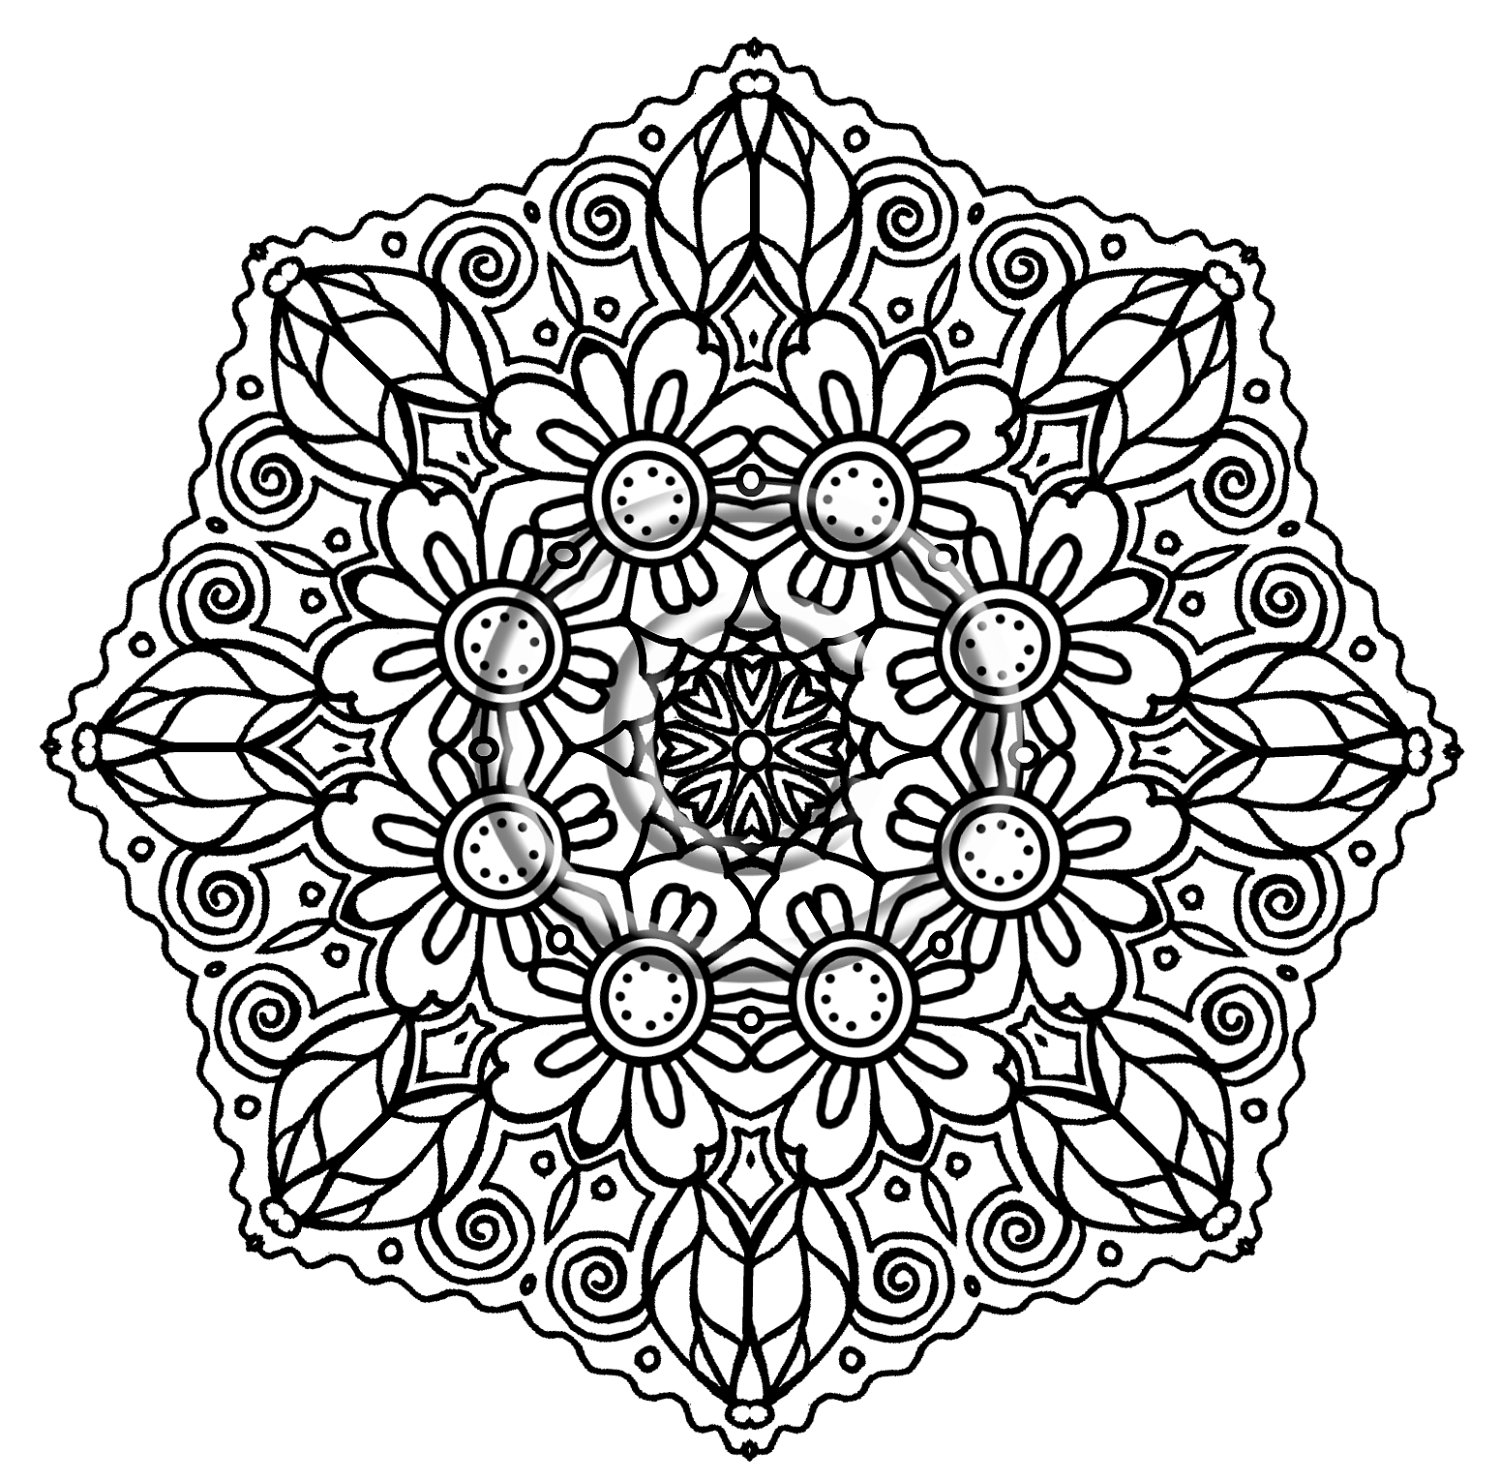 free coloring pages of flowers detailed flower coloring pages to download and print for free free coloring pages flowers of